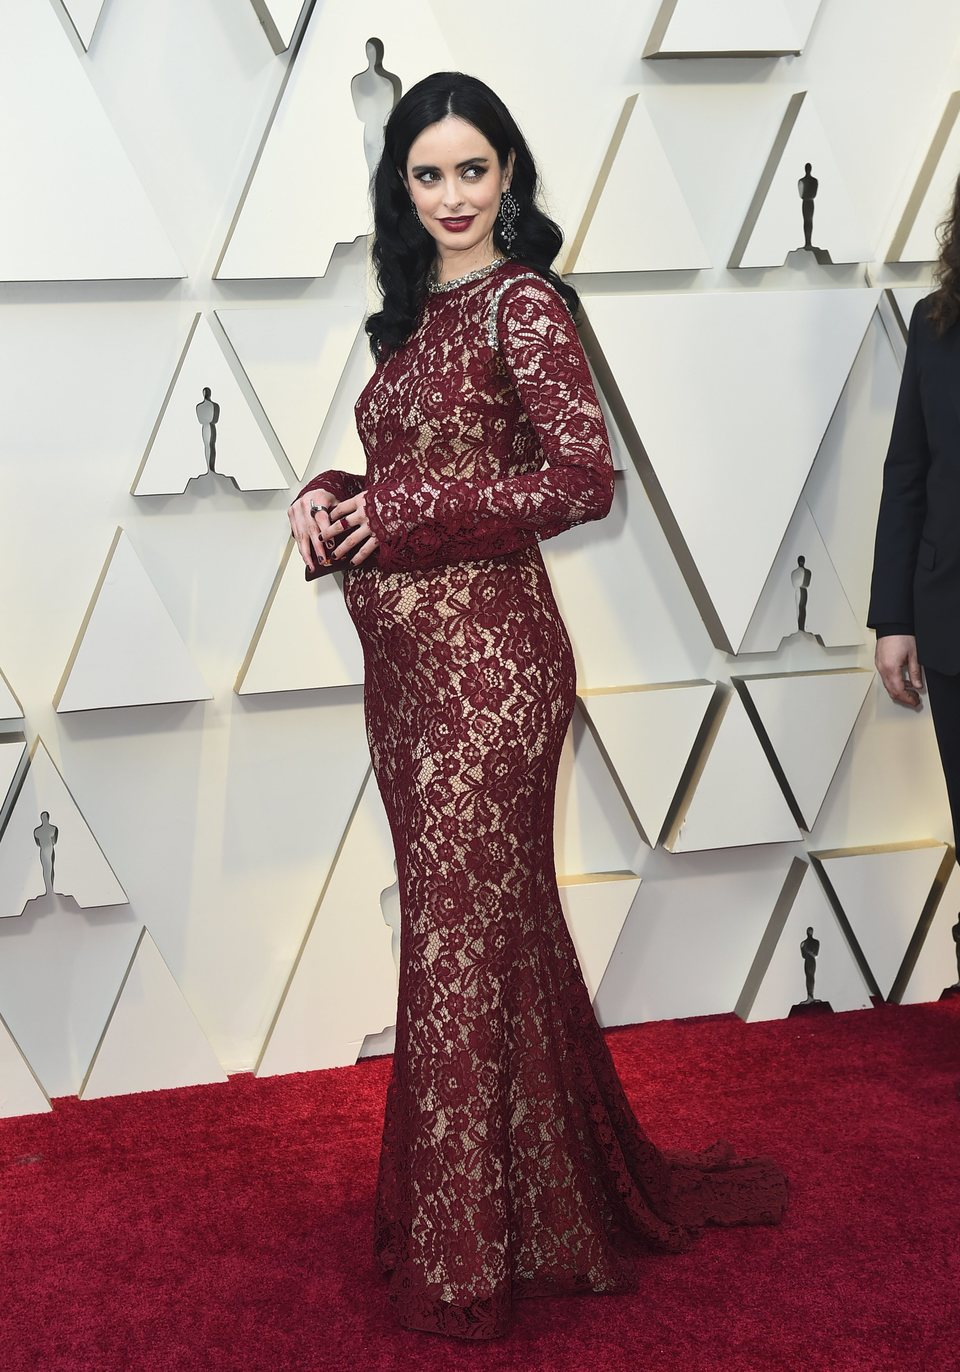 Krysten Ritter on the red carpet at the Oscars 2019